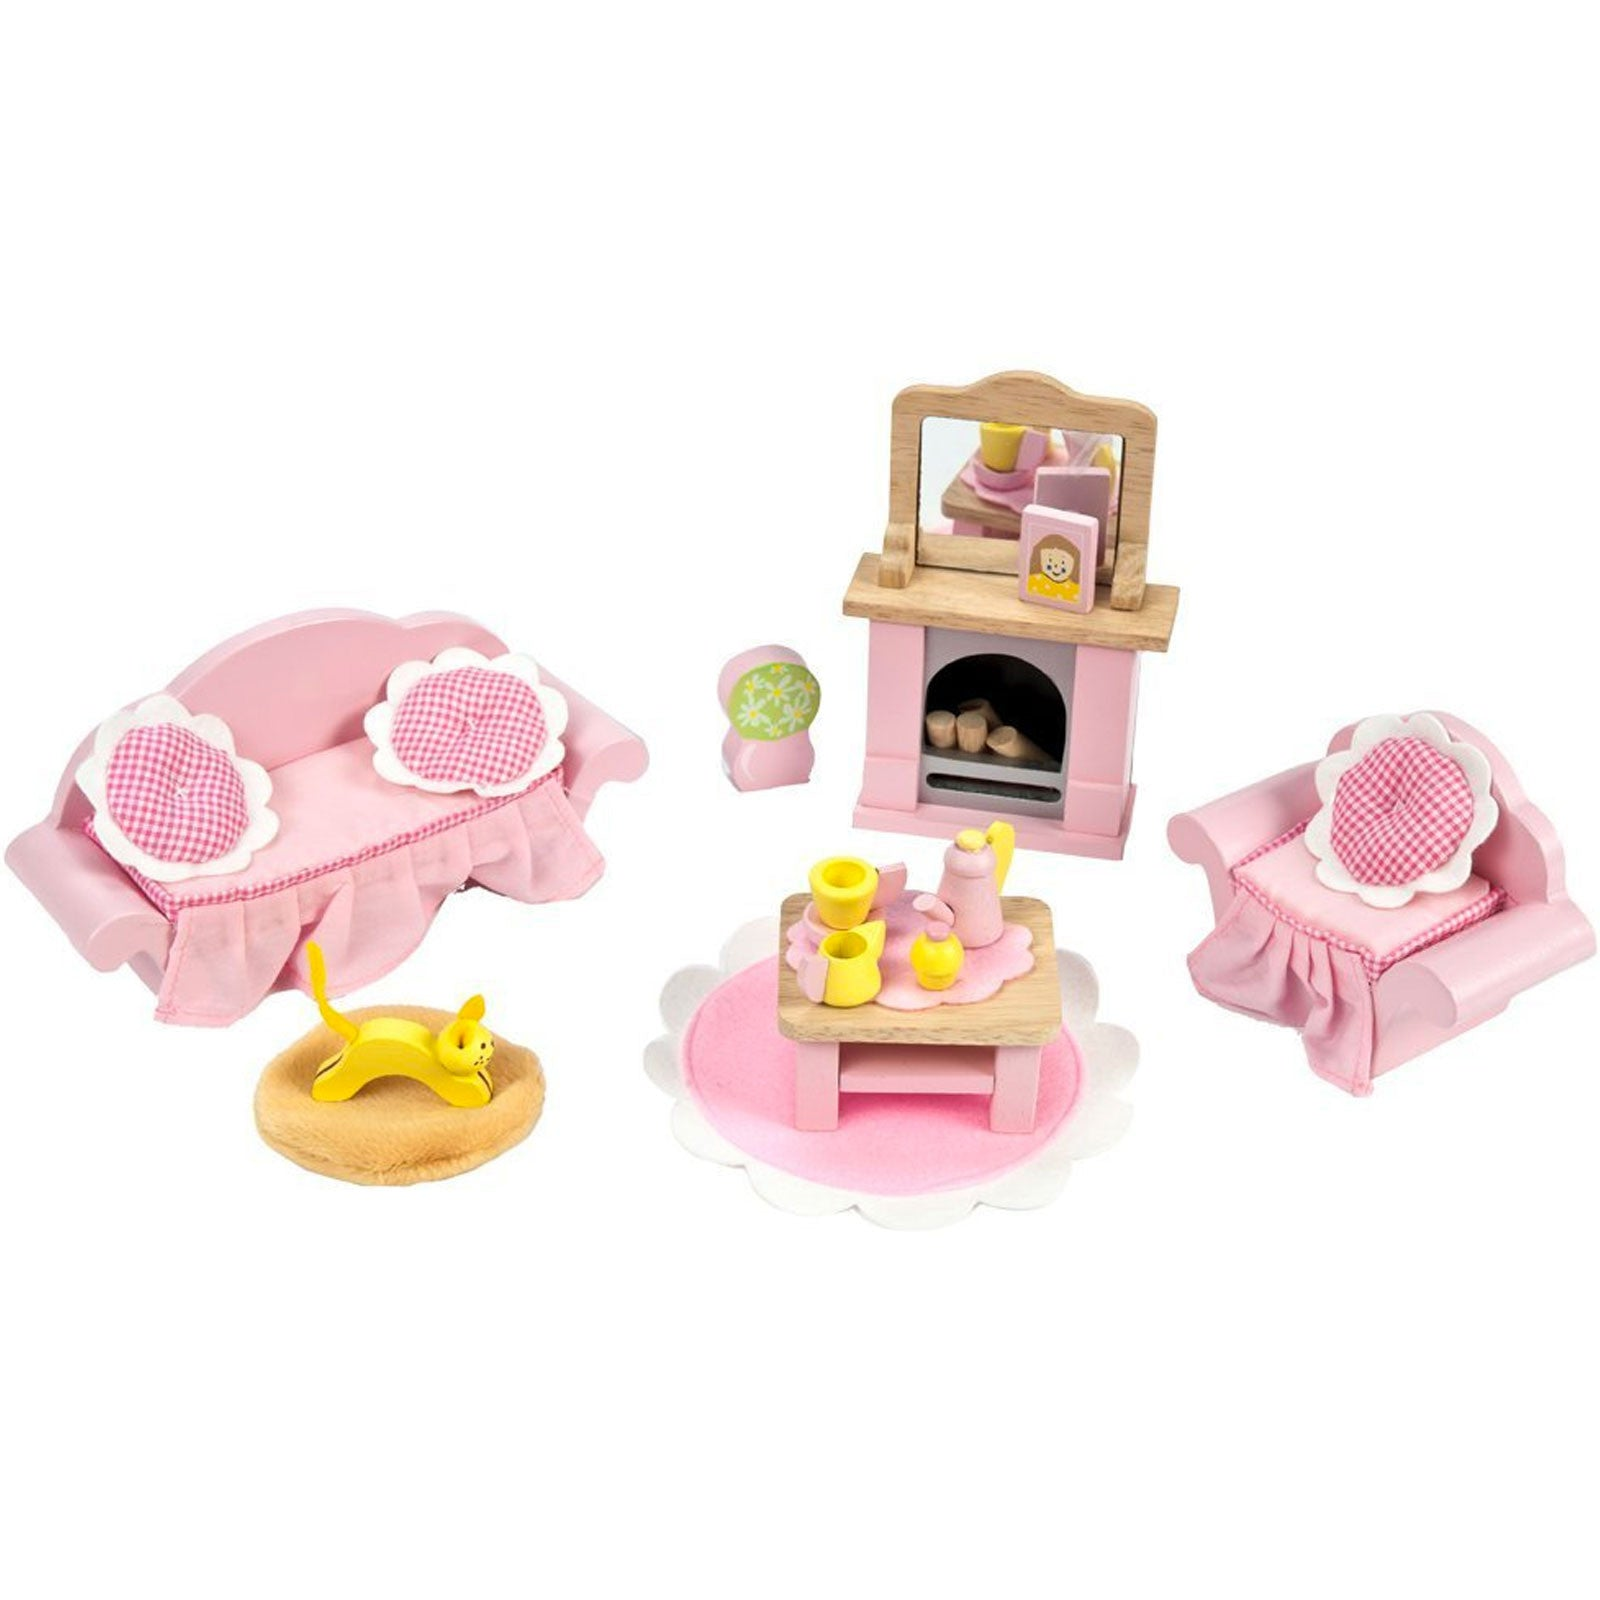 Le Toy Van Dolls House Furniture  Sitting Room - Le Toy Van - Little Earth Nest - 1